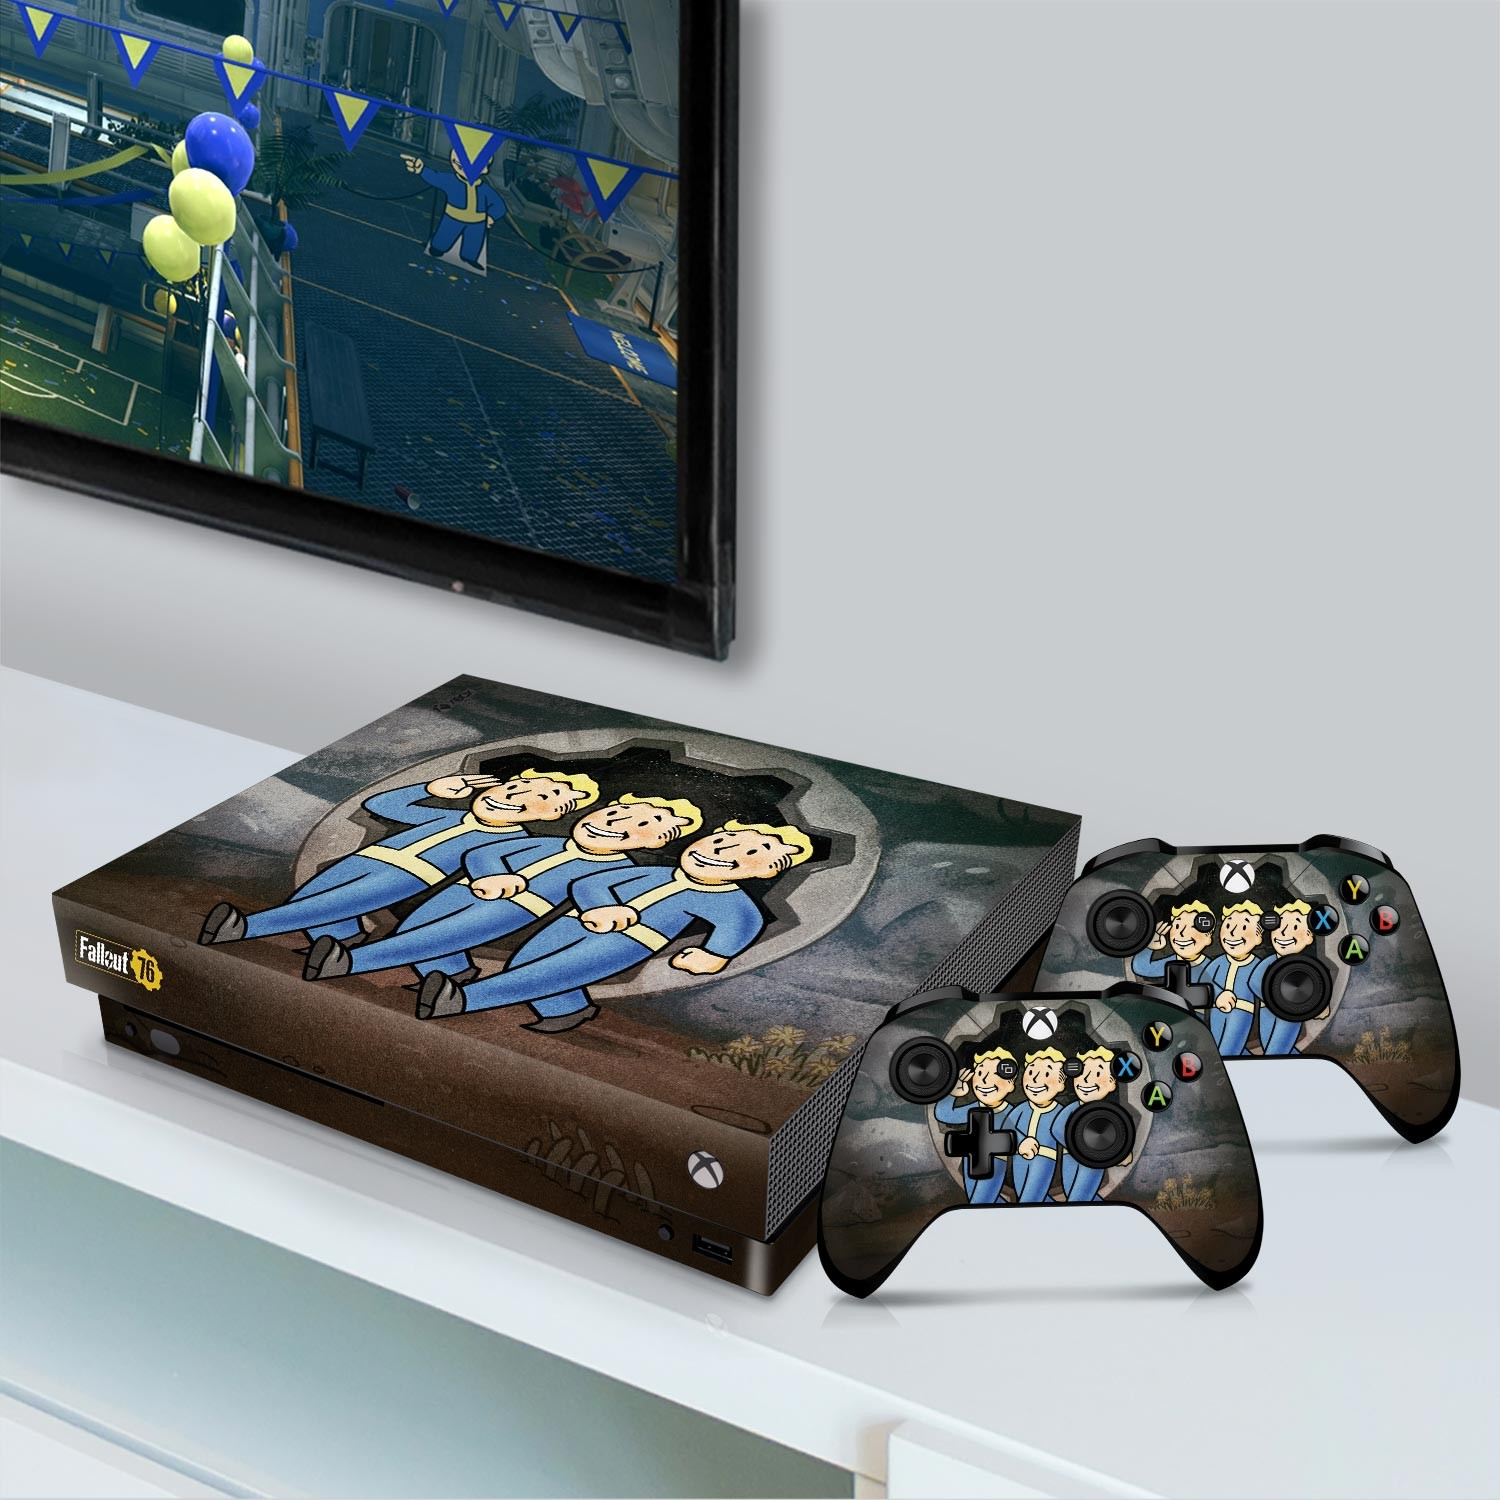 Officially Licensed Console Skin Bundle for Xbox One X - Fallout - Vault Boys